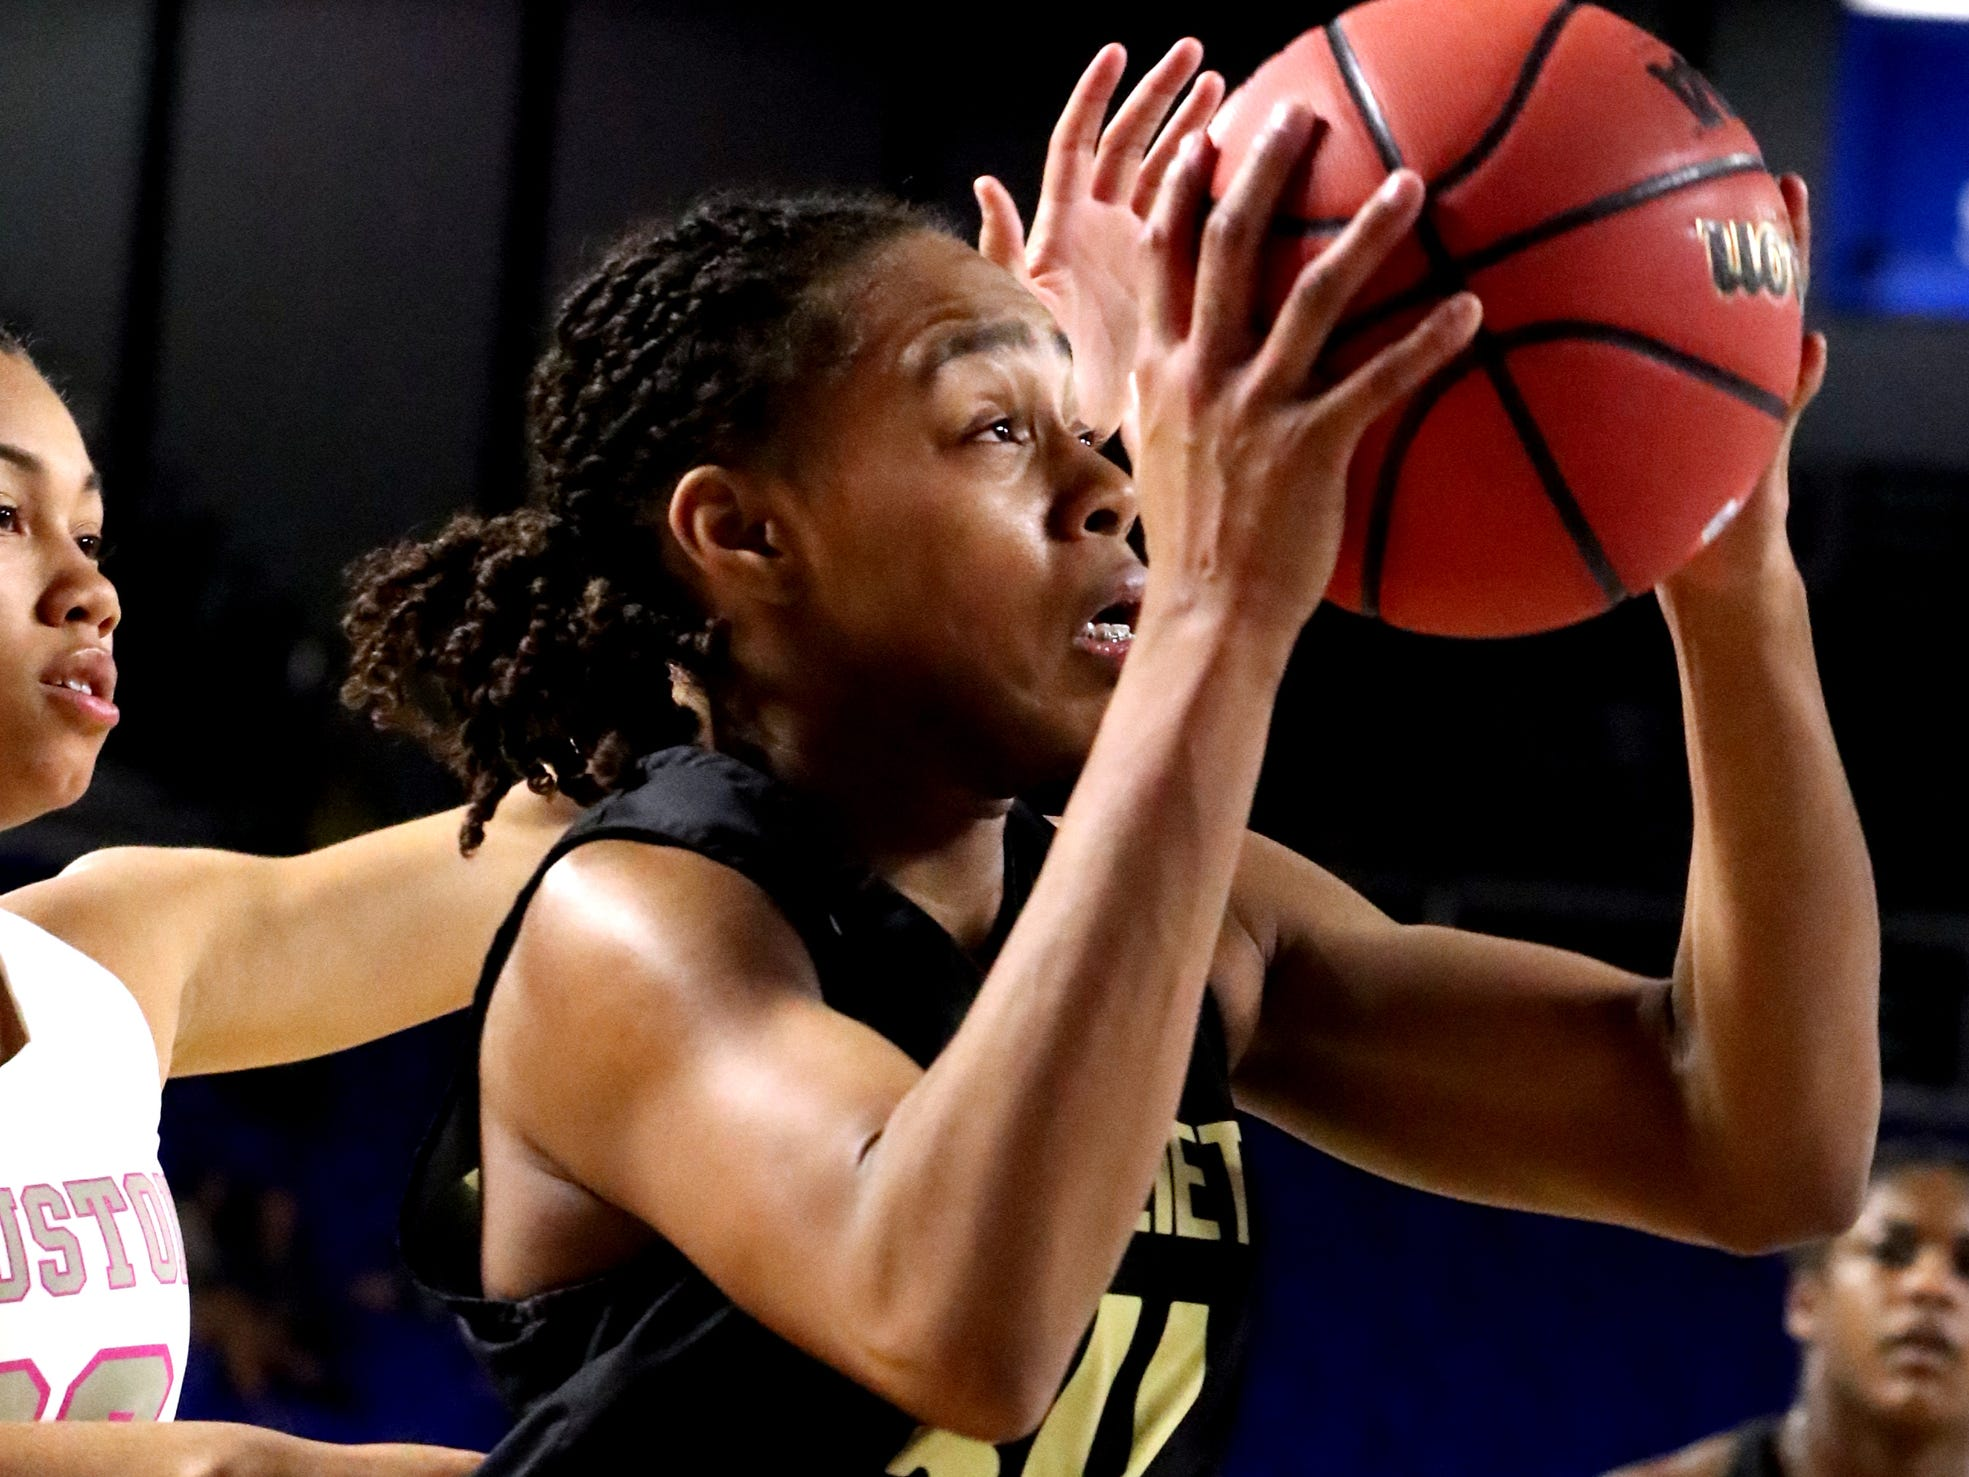 Mt. Juliet's Tondriannha Davis (34) drives to the basket during the quarterfinal round of the TSSAA Div. 1 Class AAA Girls State Tournament against the Houston, on Wednesday, March 6, 2019, at Murphy Center in Murfreesboro, Tenn.